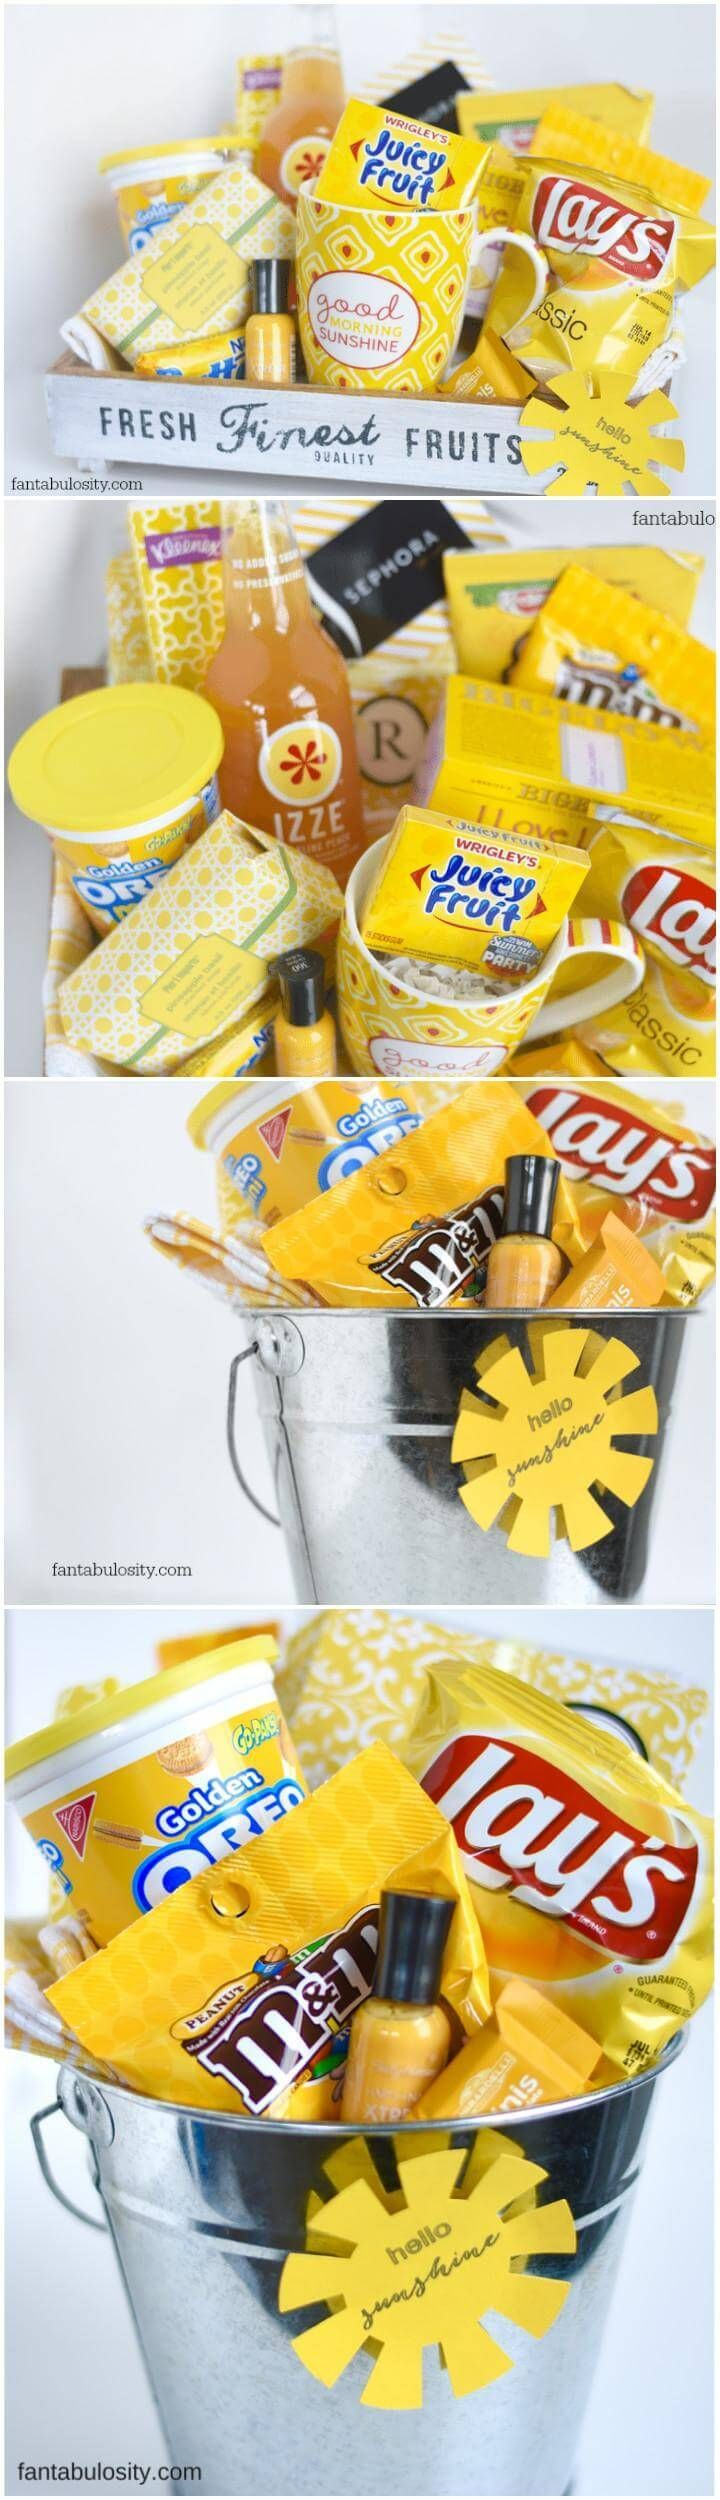 70+ Inexpensive DIY Gift Basket Ideas - DIY Gifts - Page 4 of 14 - DIY & Crafts